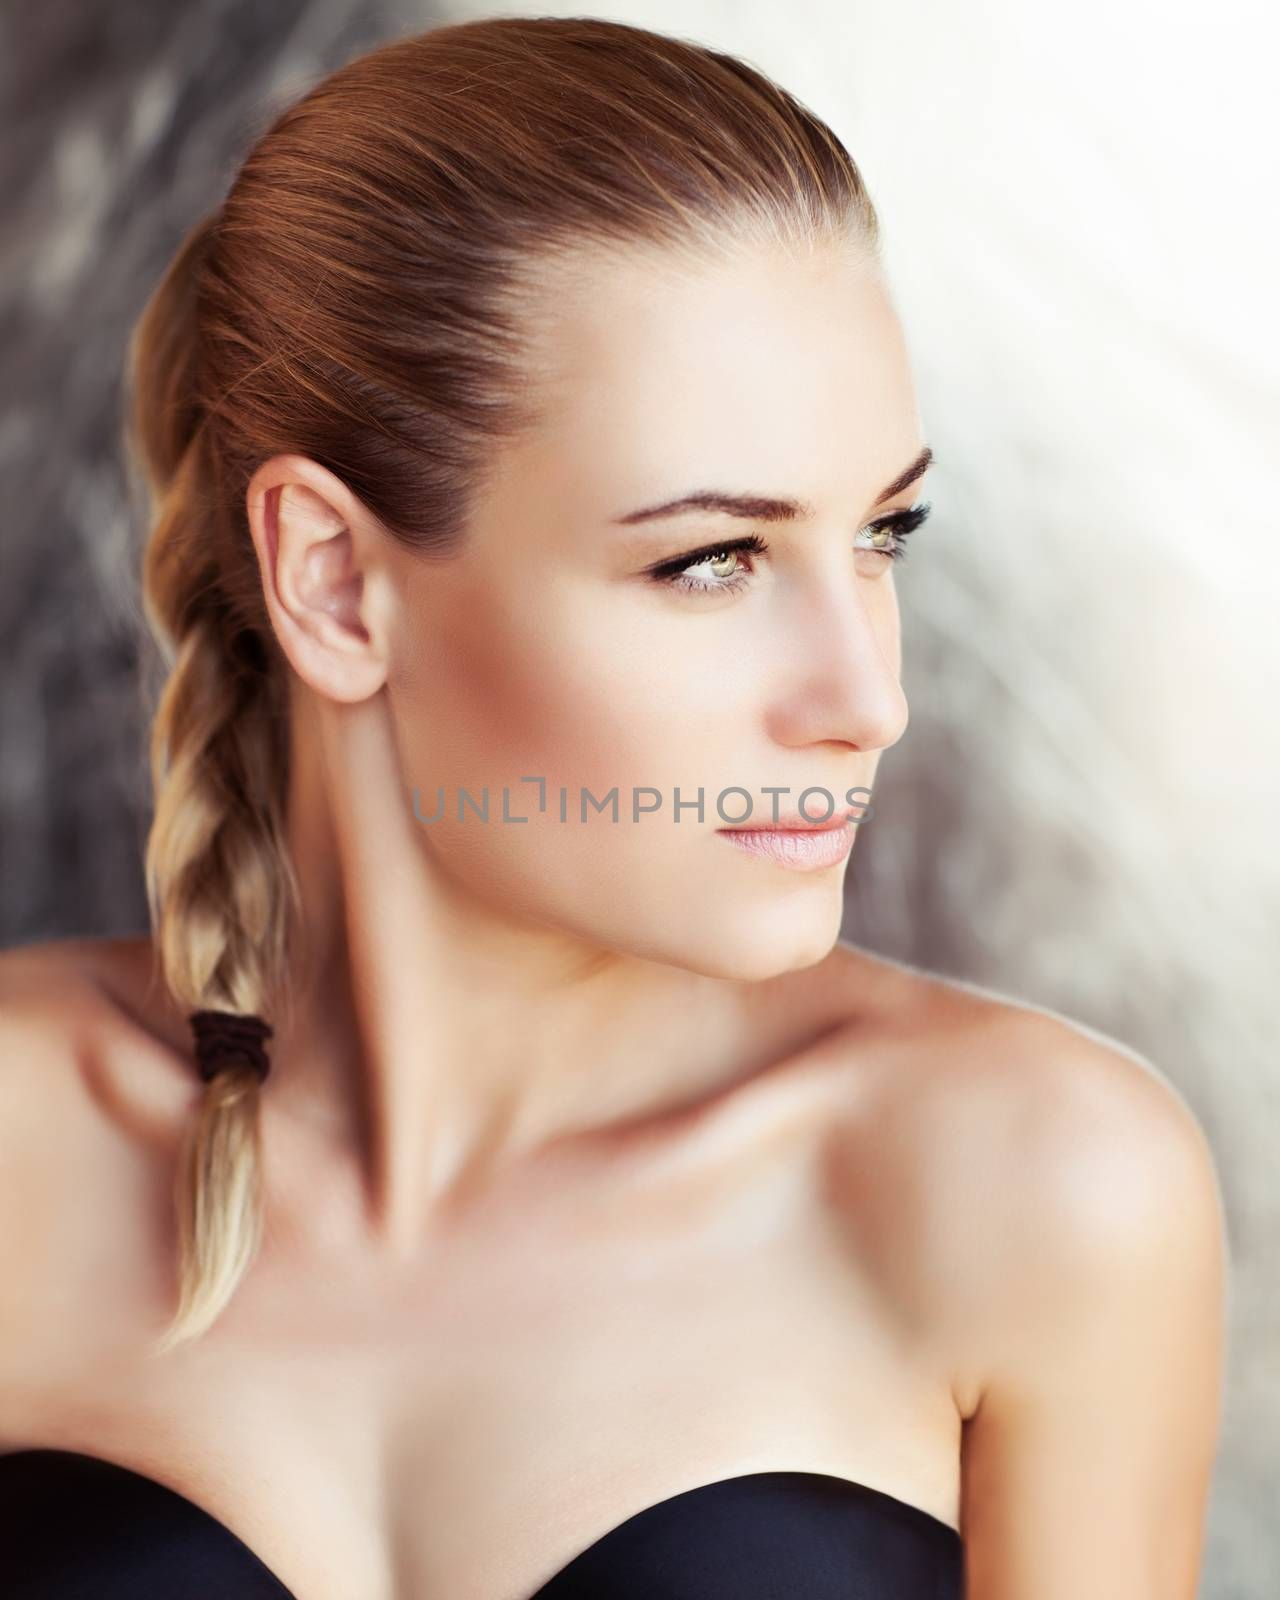 Portrait of a beautiful woman with natural makeup and stylish braid hairstyle looking aside, authentic beauty, fashion look of a gorgeous young model with perfect skin